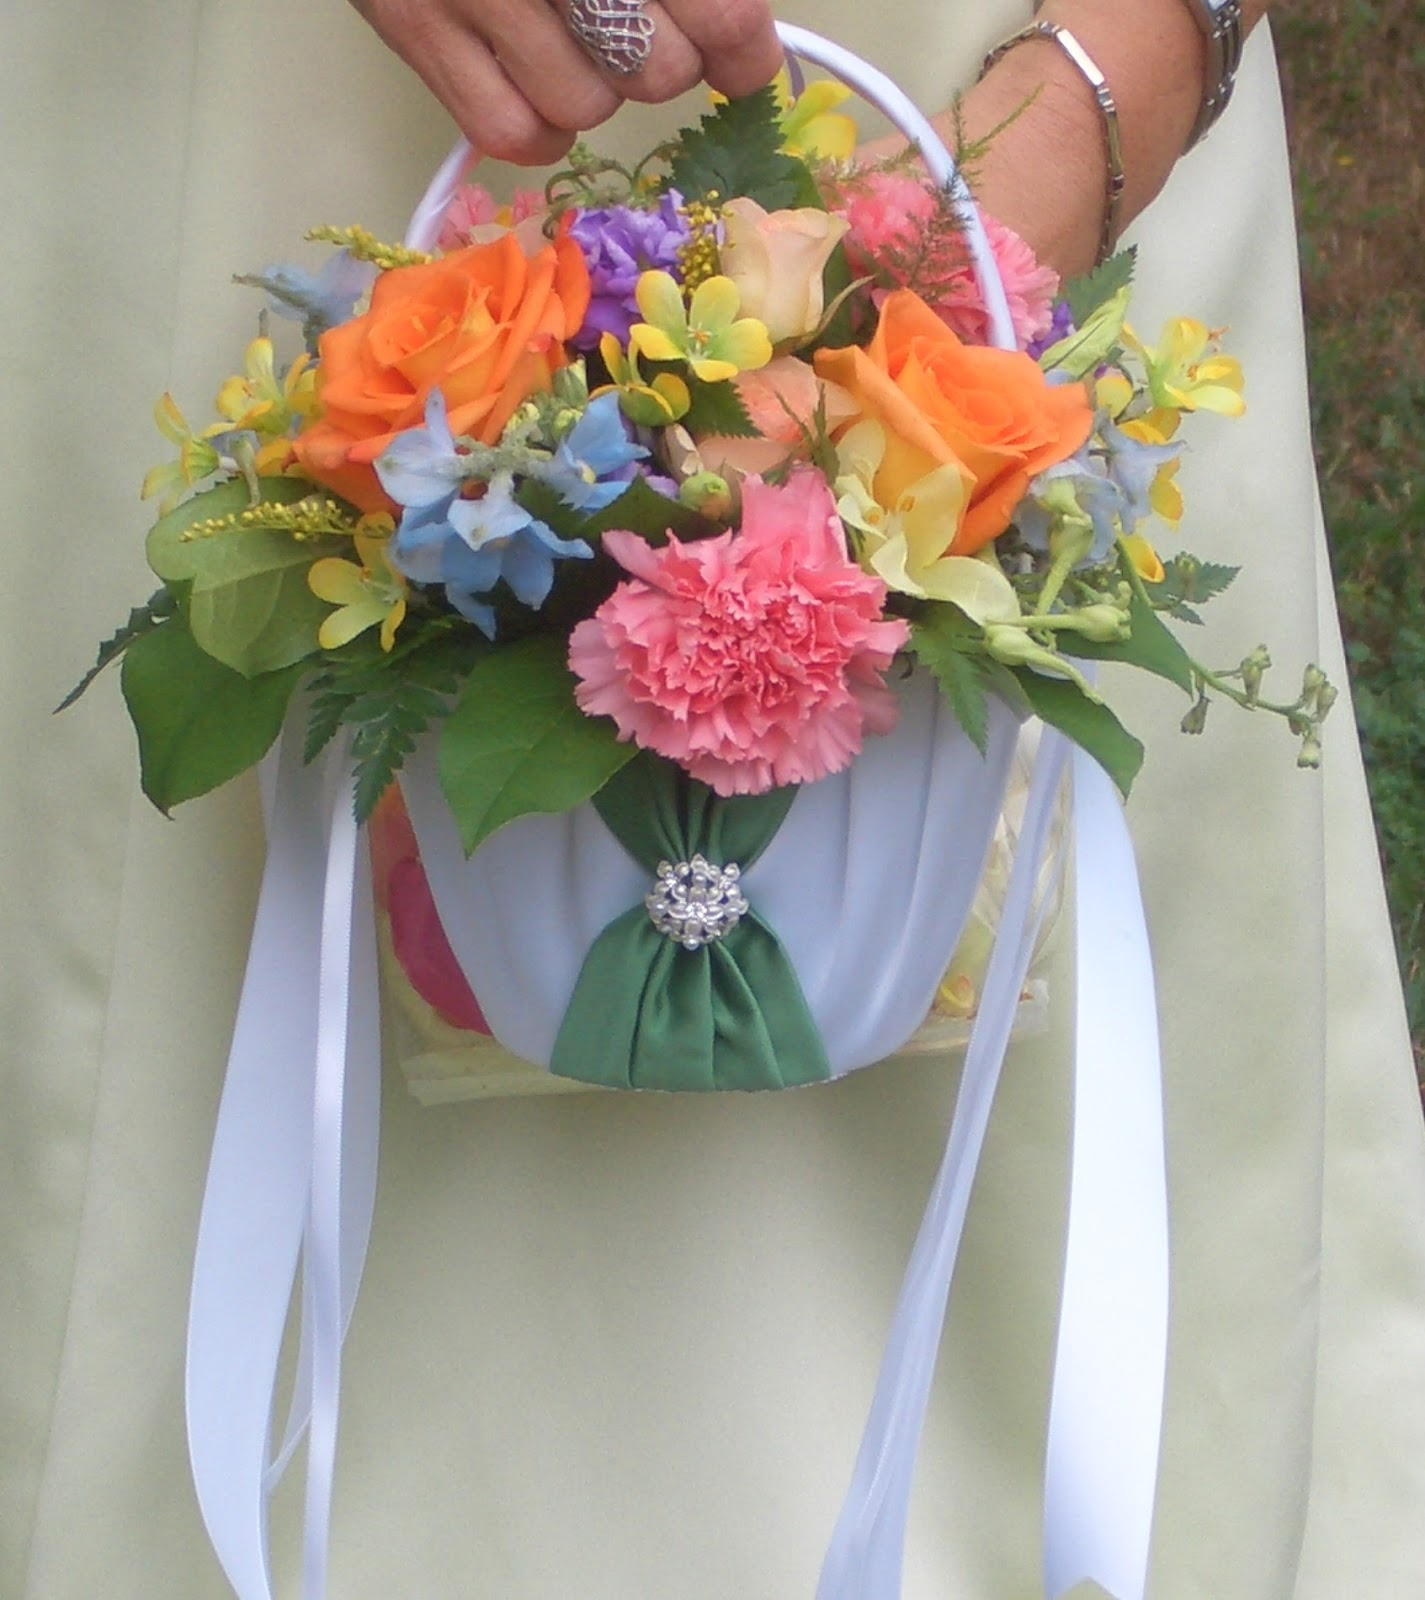 The enchanted petal wedding flowers springtime flower girl basket by stein your florist co izmirmasajfo